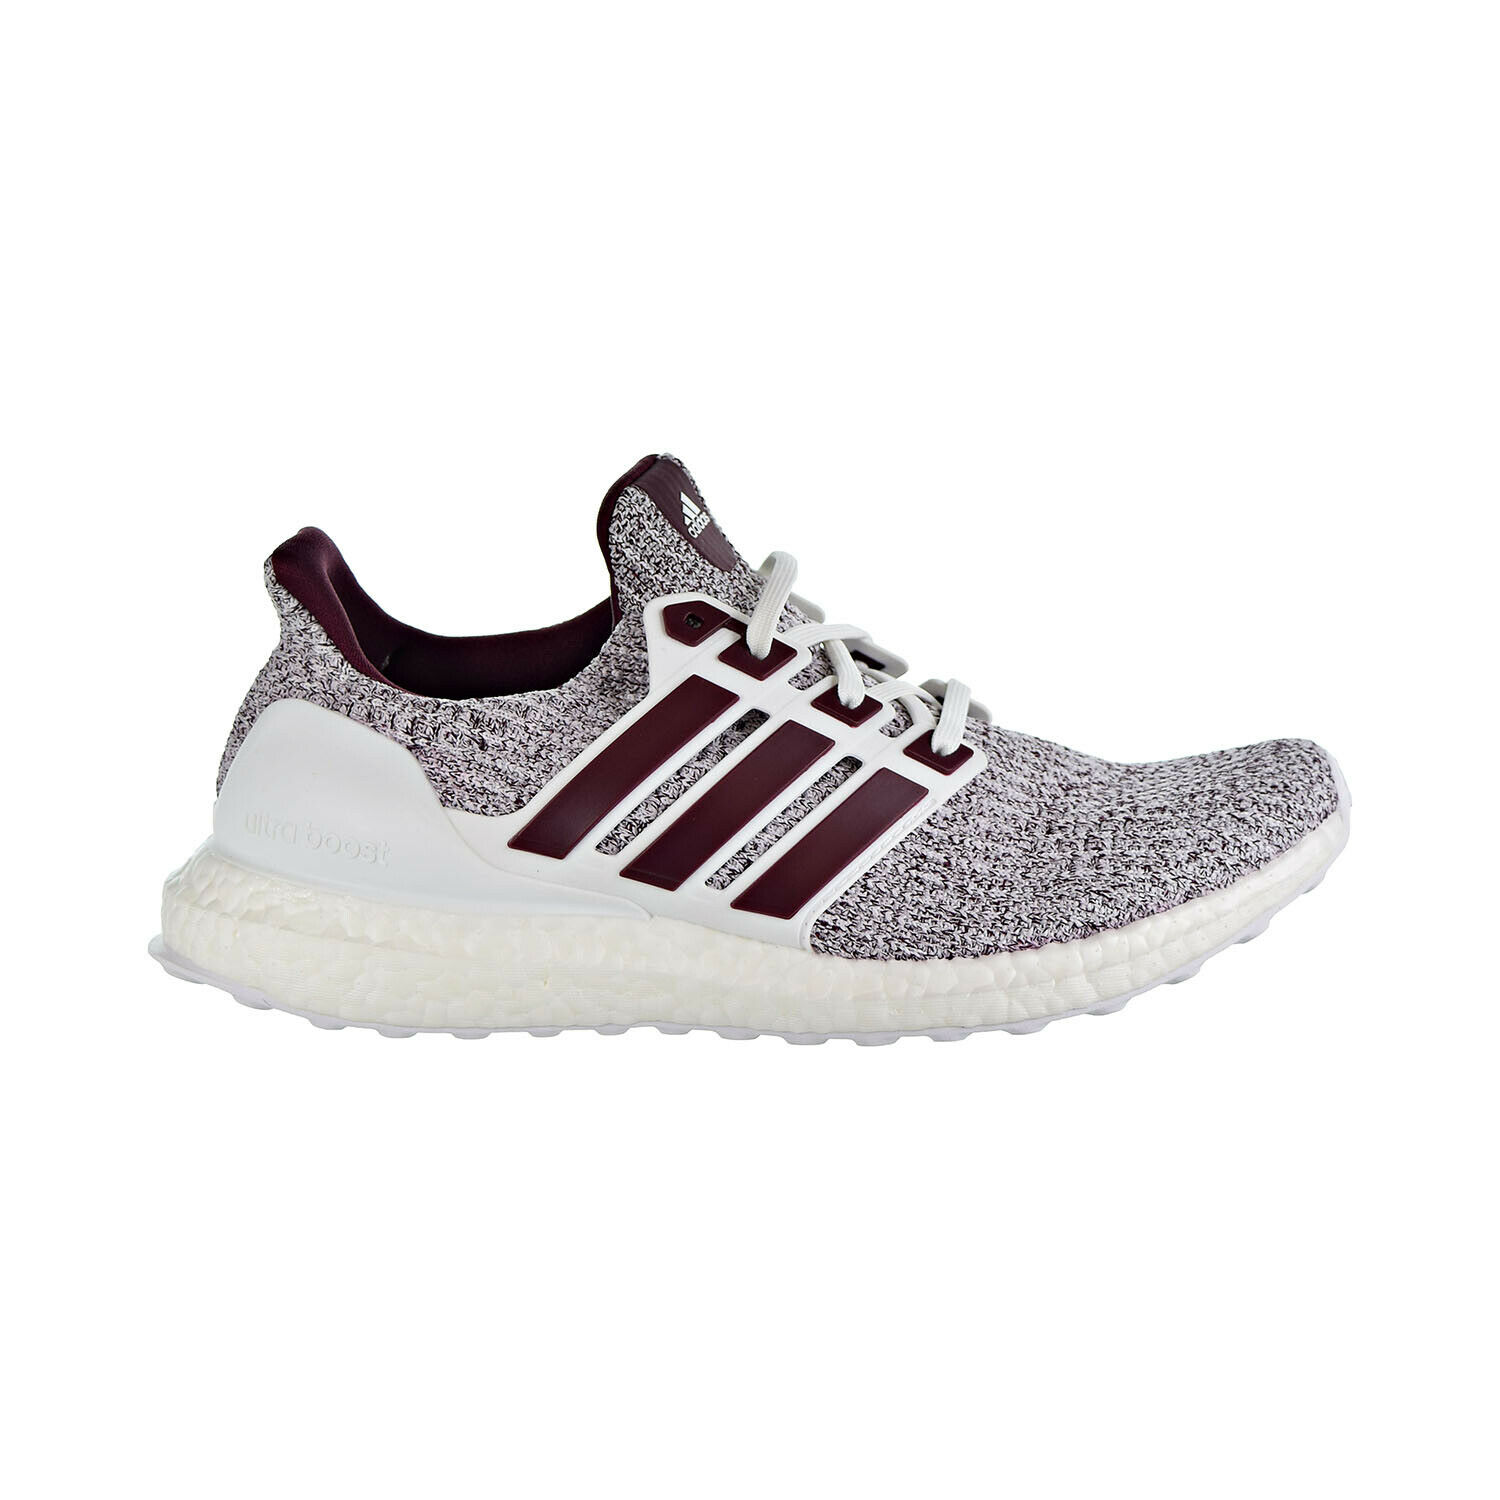 Adidas Ultraboost Men's shoes Cloud White Maroon EE3705